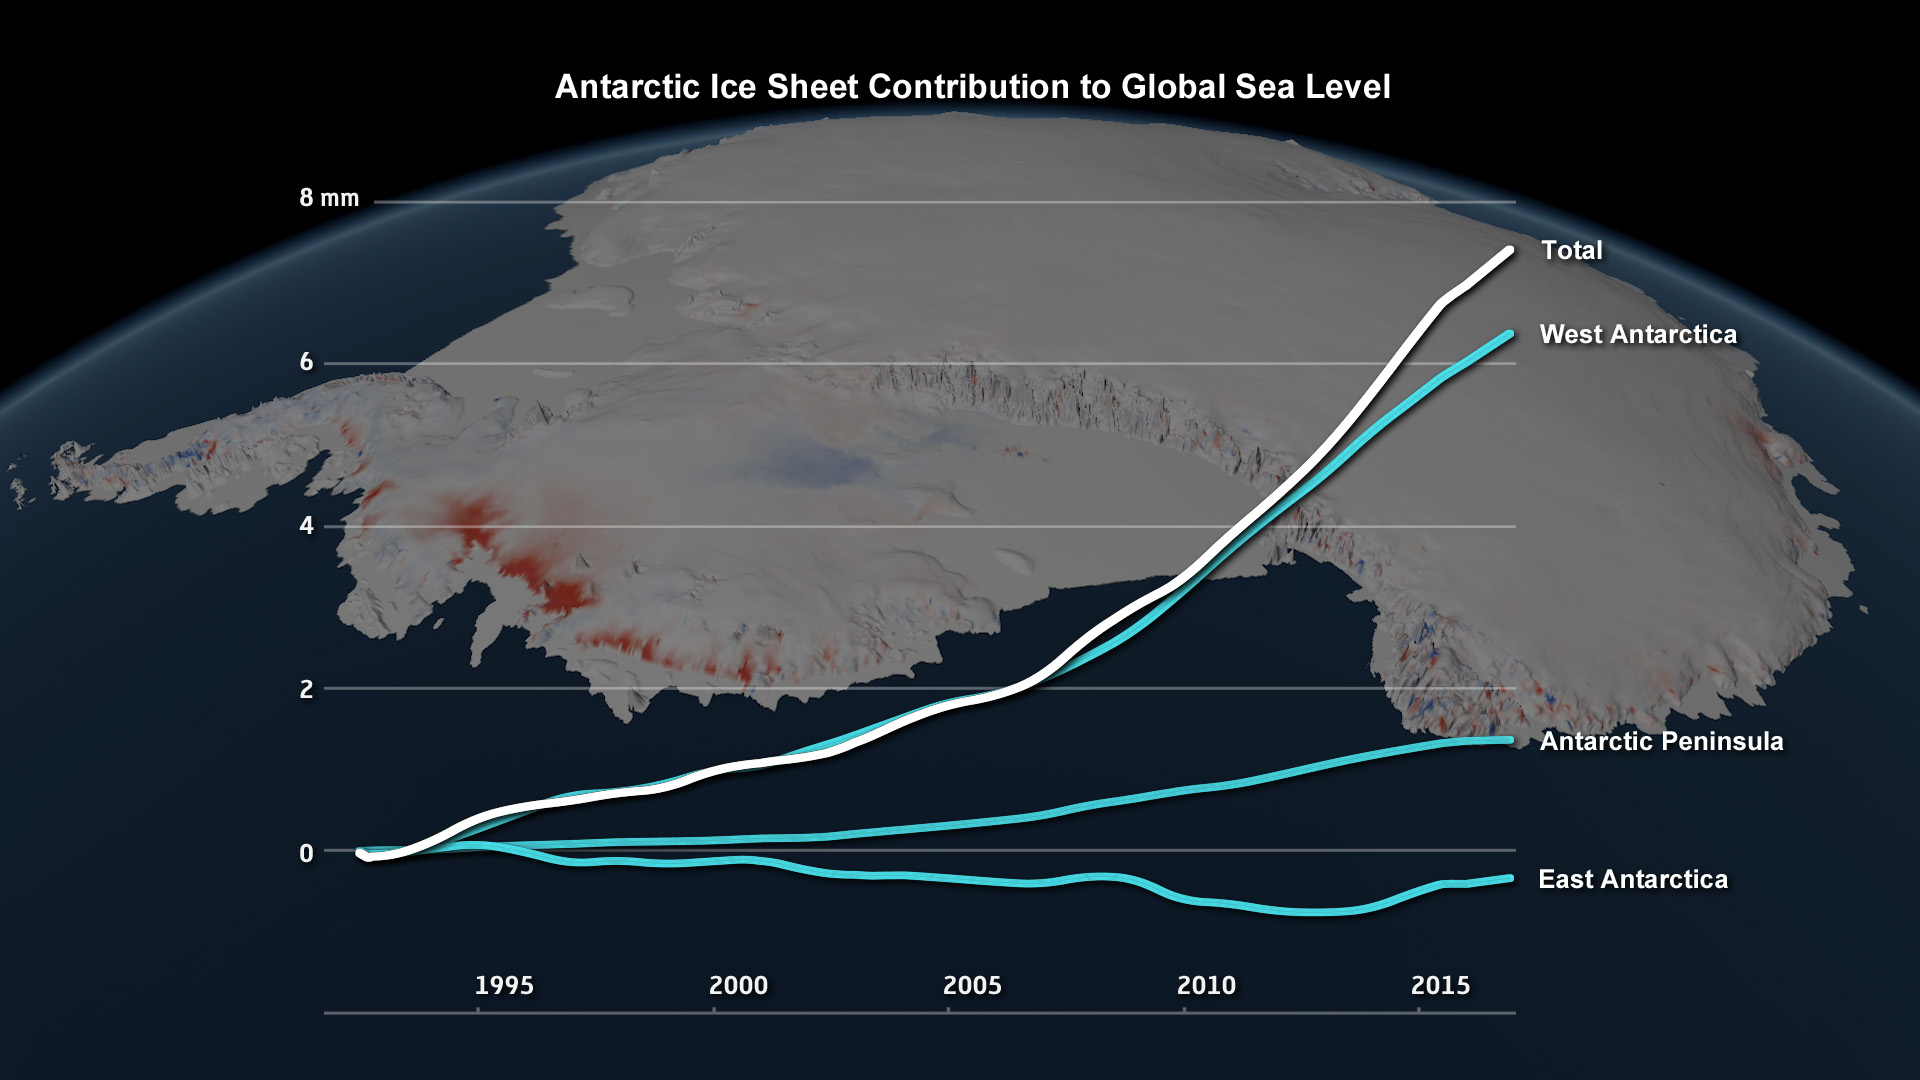 Antarctic ice sheet contributions to SLR